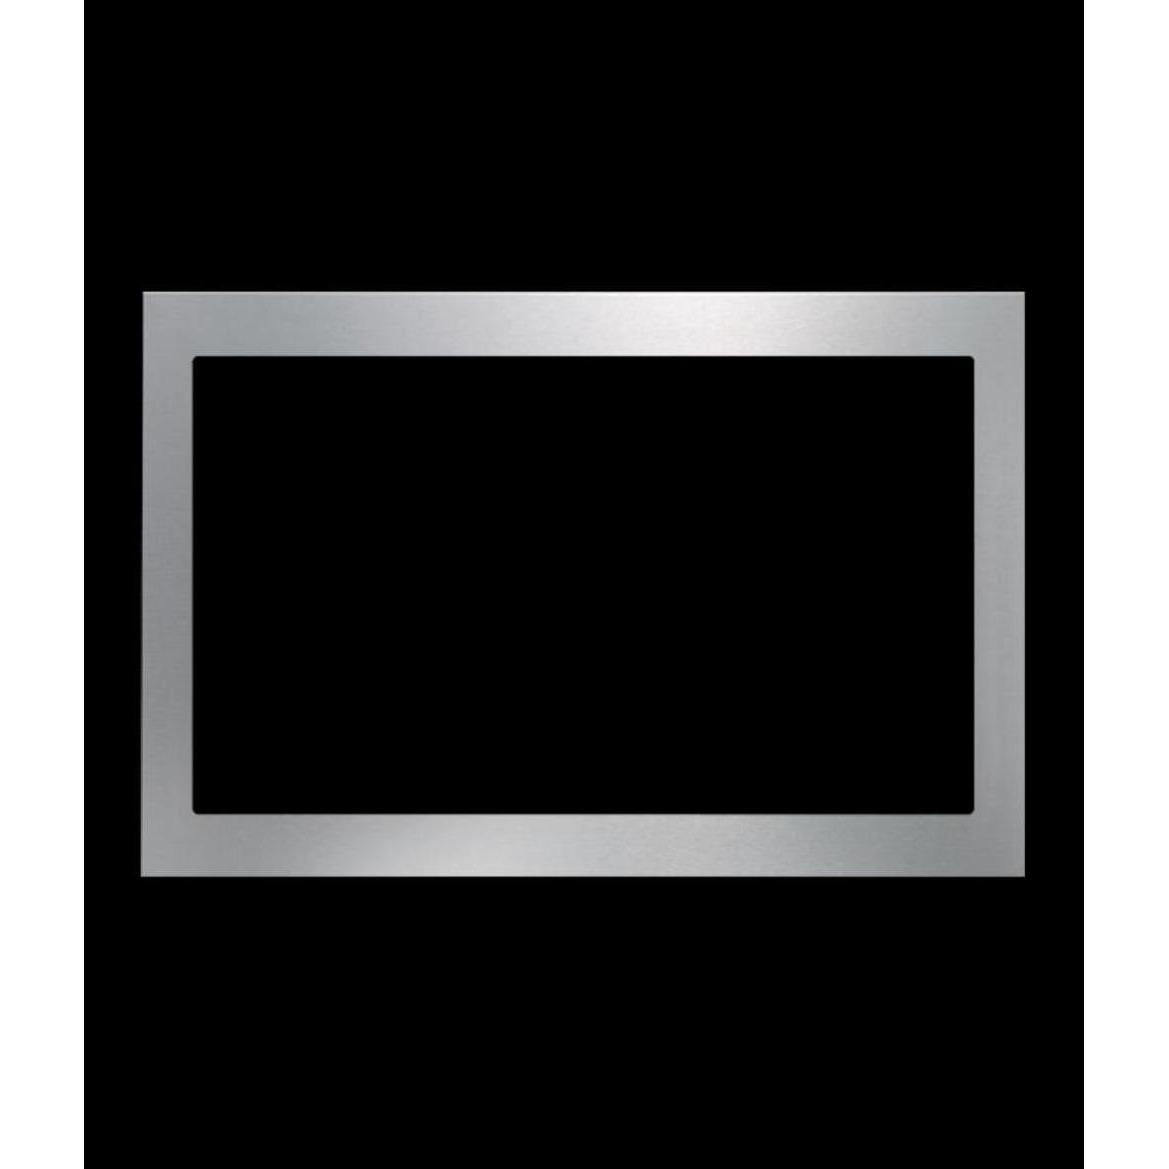 Promo Modena Fm 2500 Built-In Frame For Microwave Oven - Stainless Steel - Usable For Mg 2502